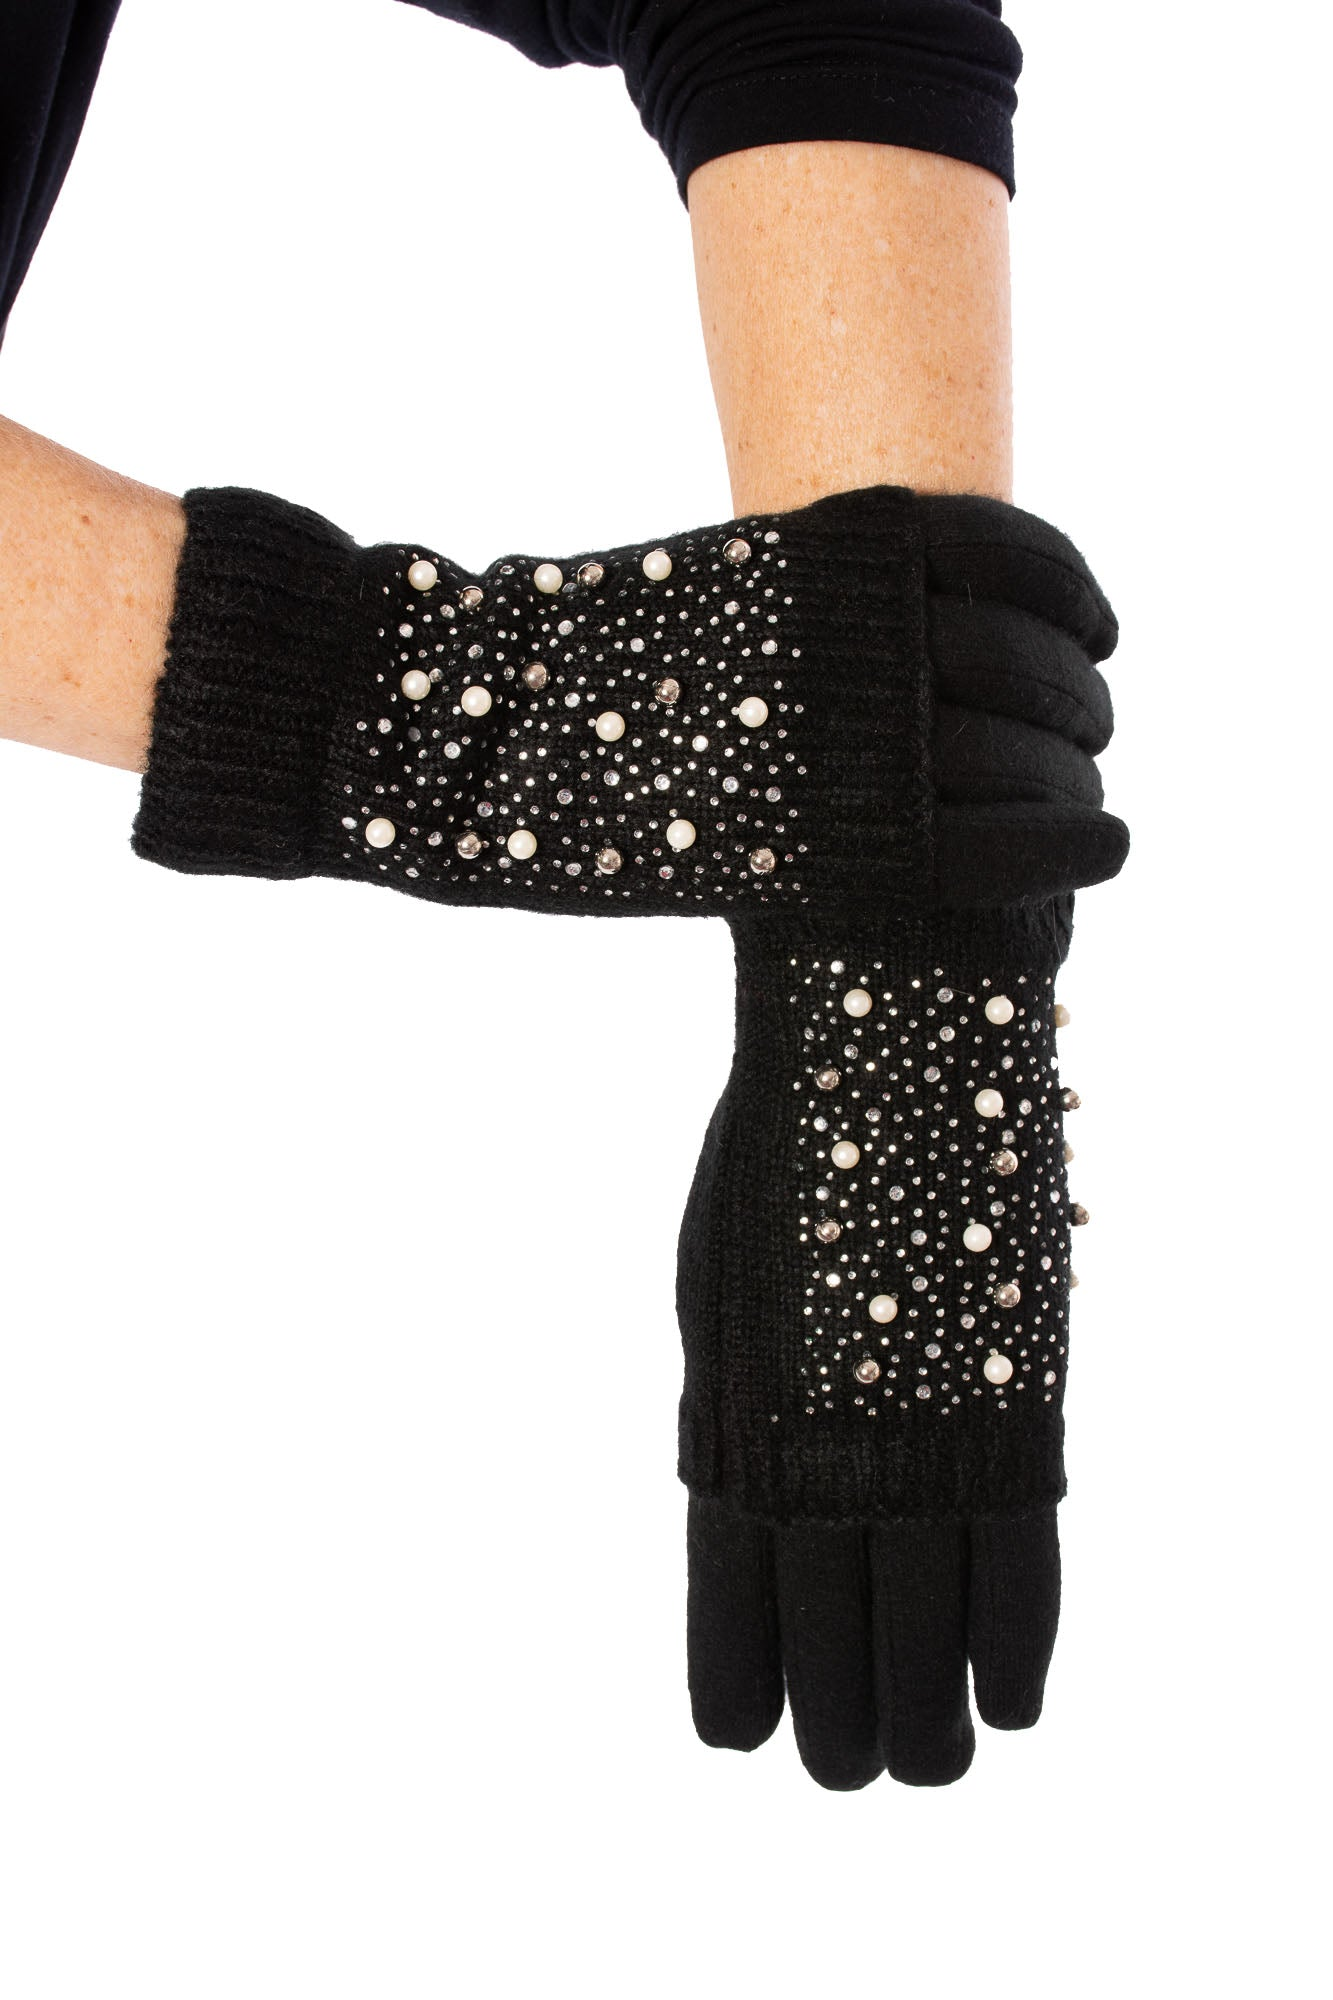 Pia Rossini - Two In One Glove w/Perl Trim (KRISTENGLOVE, Black)